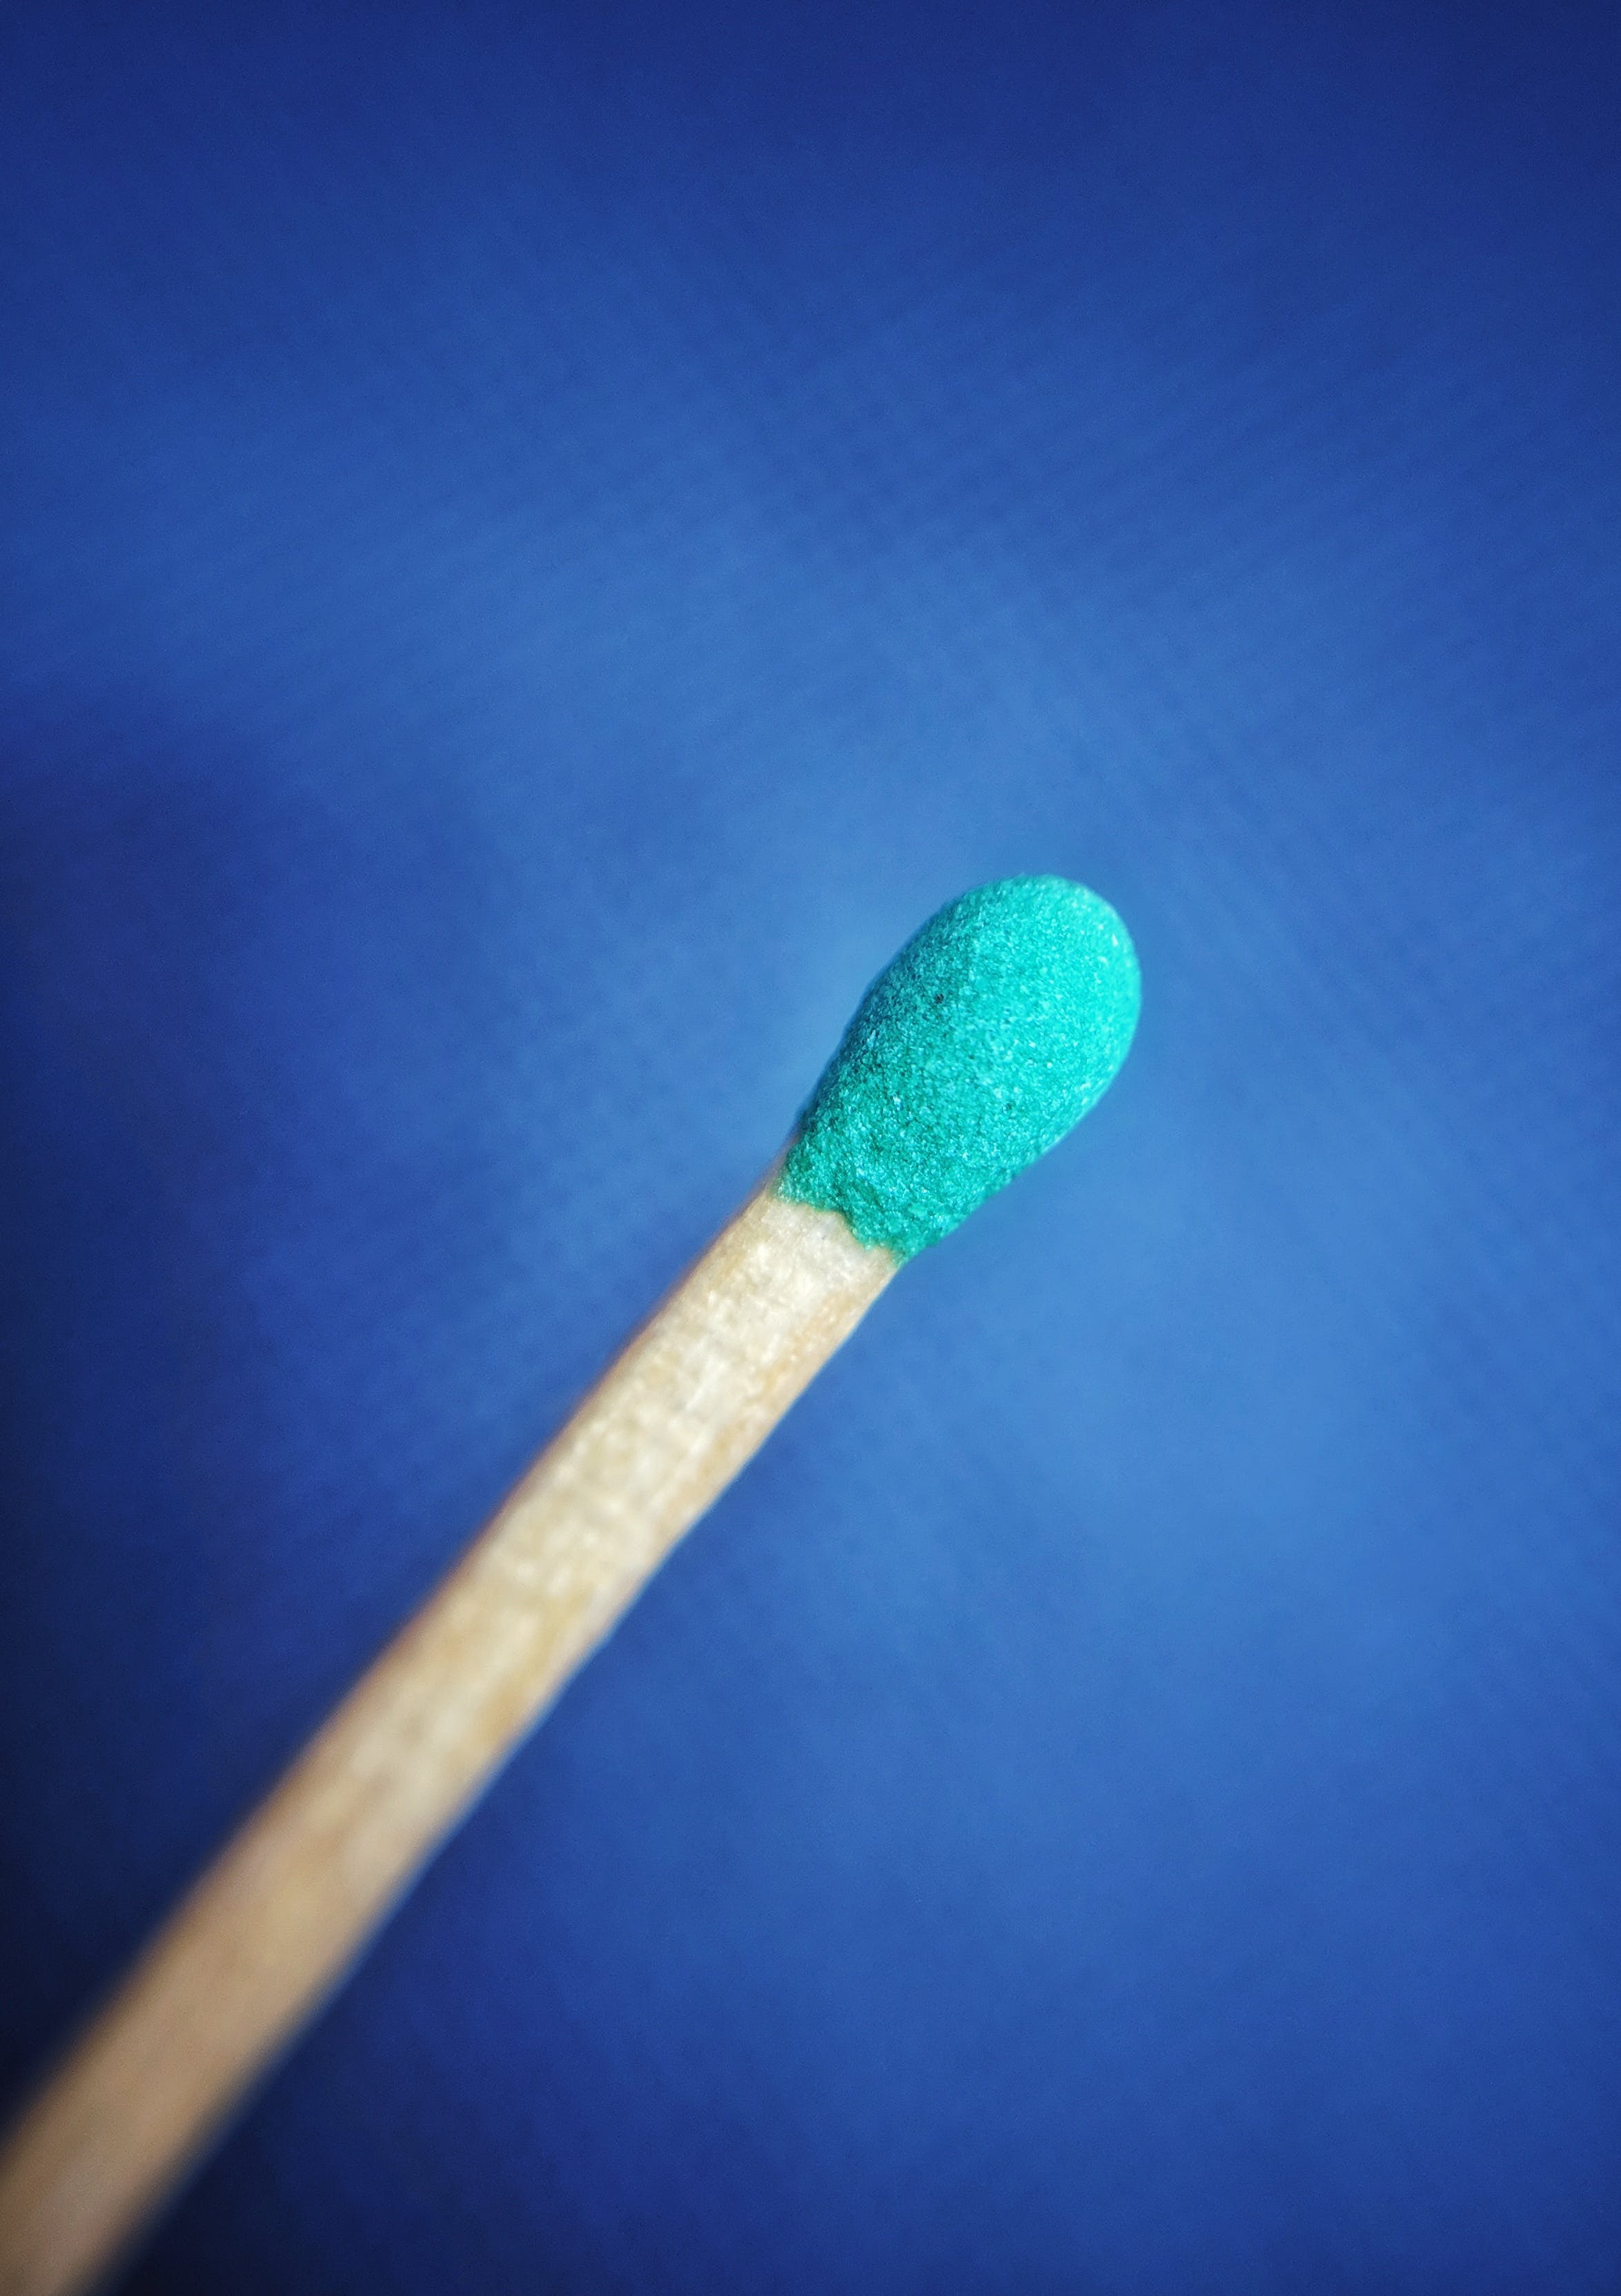 Close Up Photo of Green Matchstick